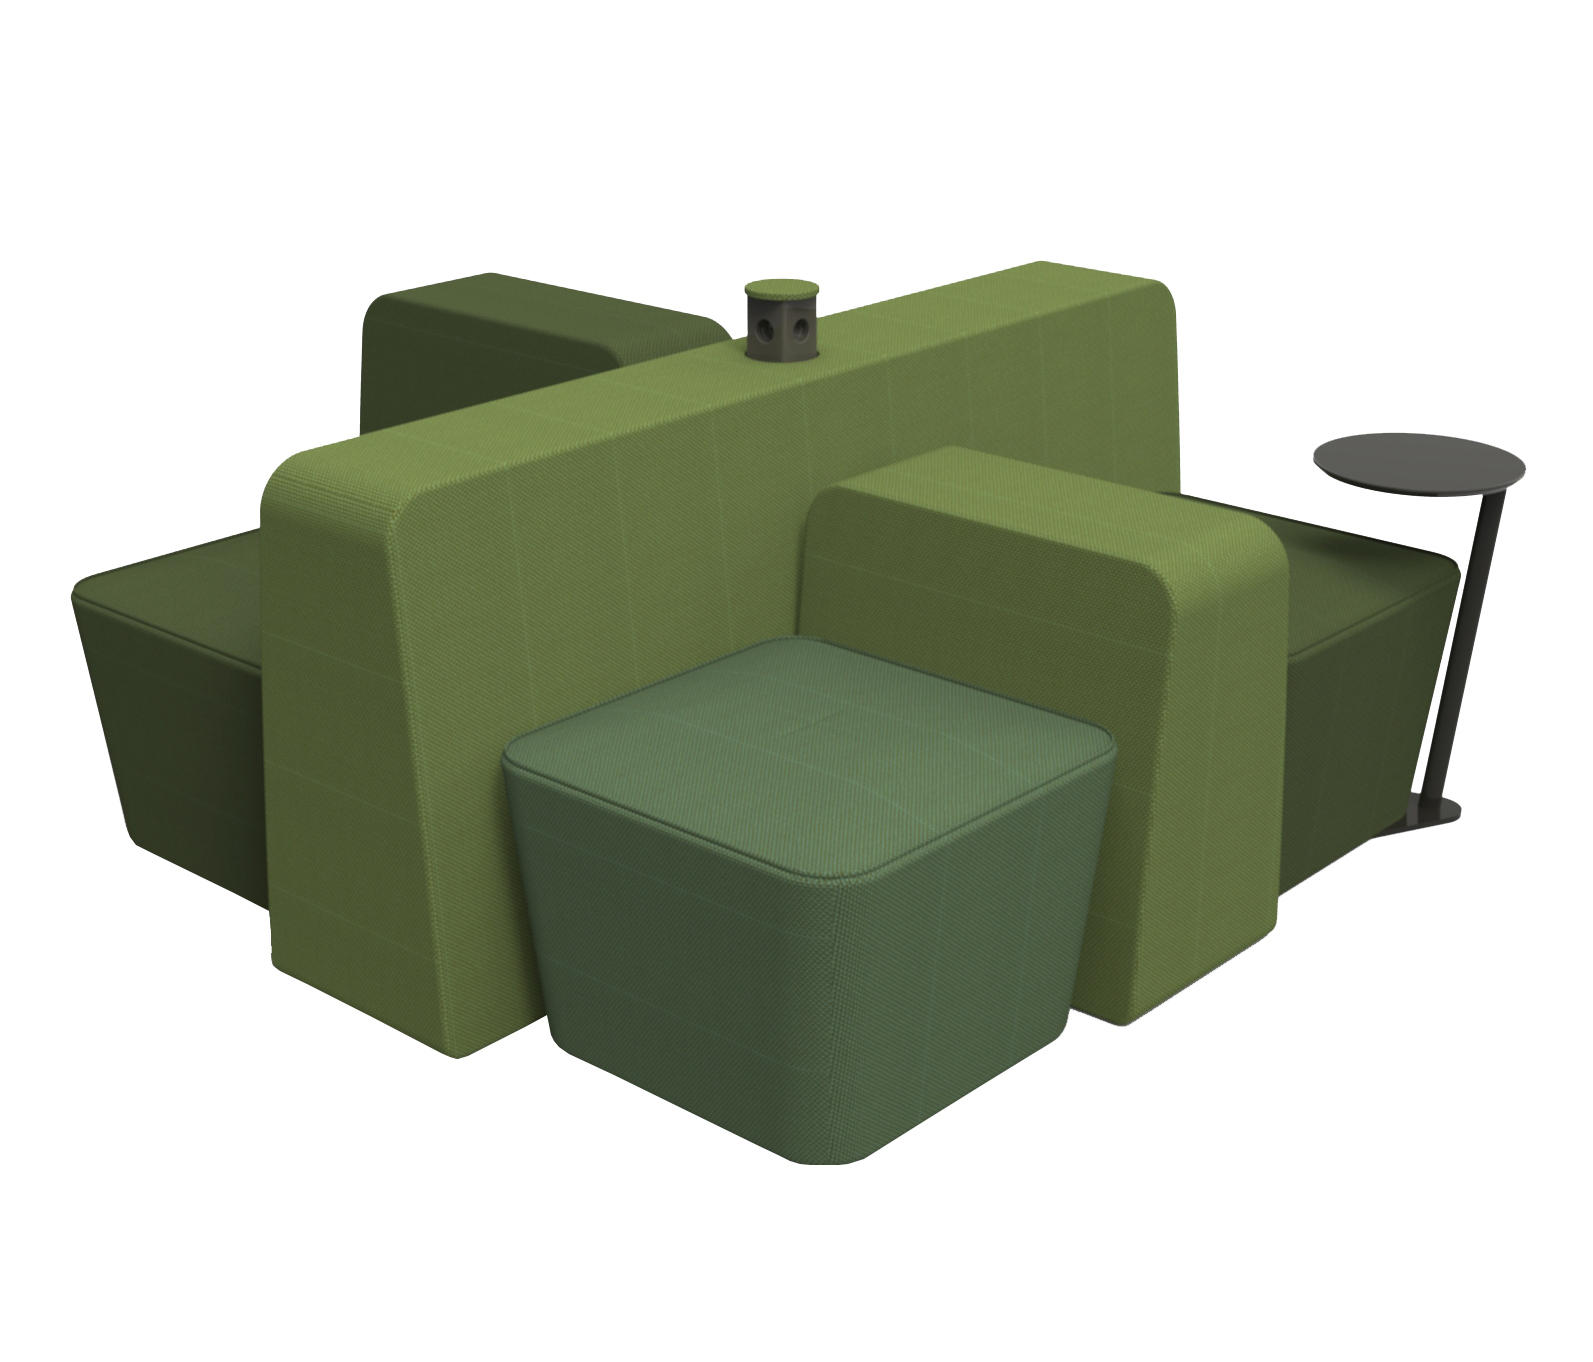 Terrific Mint Lounge Chair Sofas Von Rossin Architonic Alphanode Cool Chair Designs And Ideas Alphanodeonline